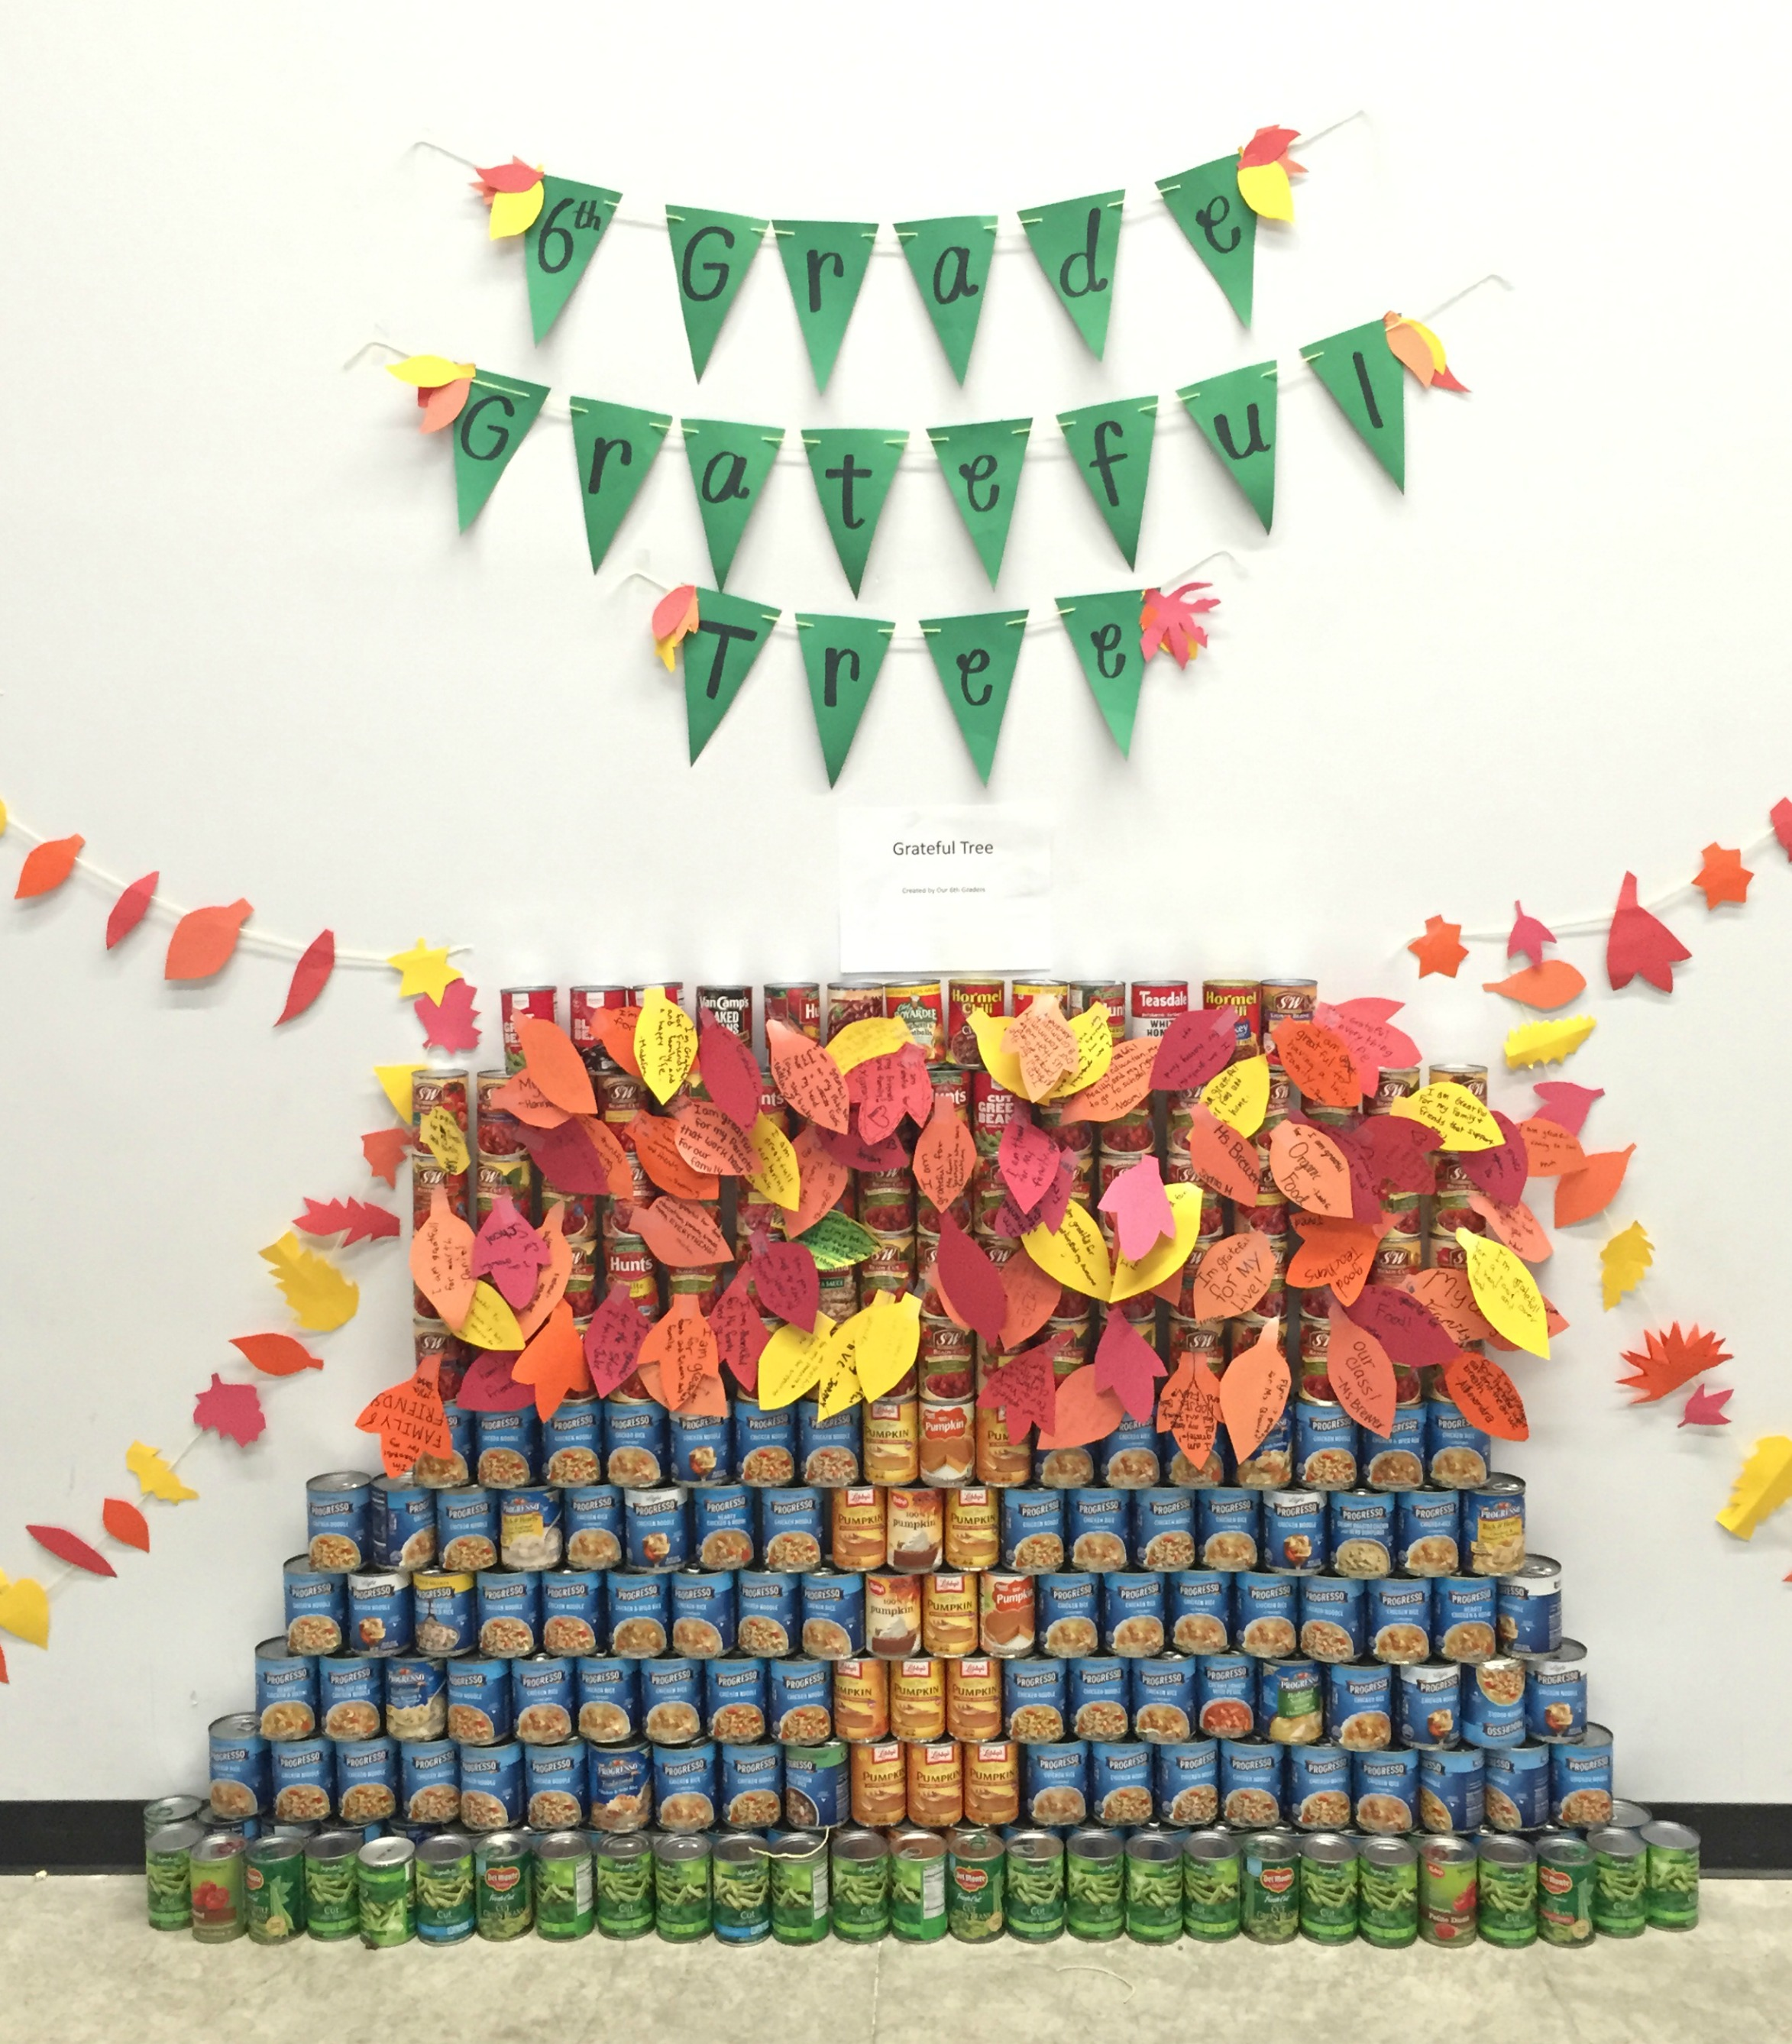 Clever and Easier Canned Food Structure Ideas